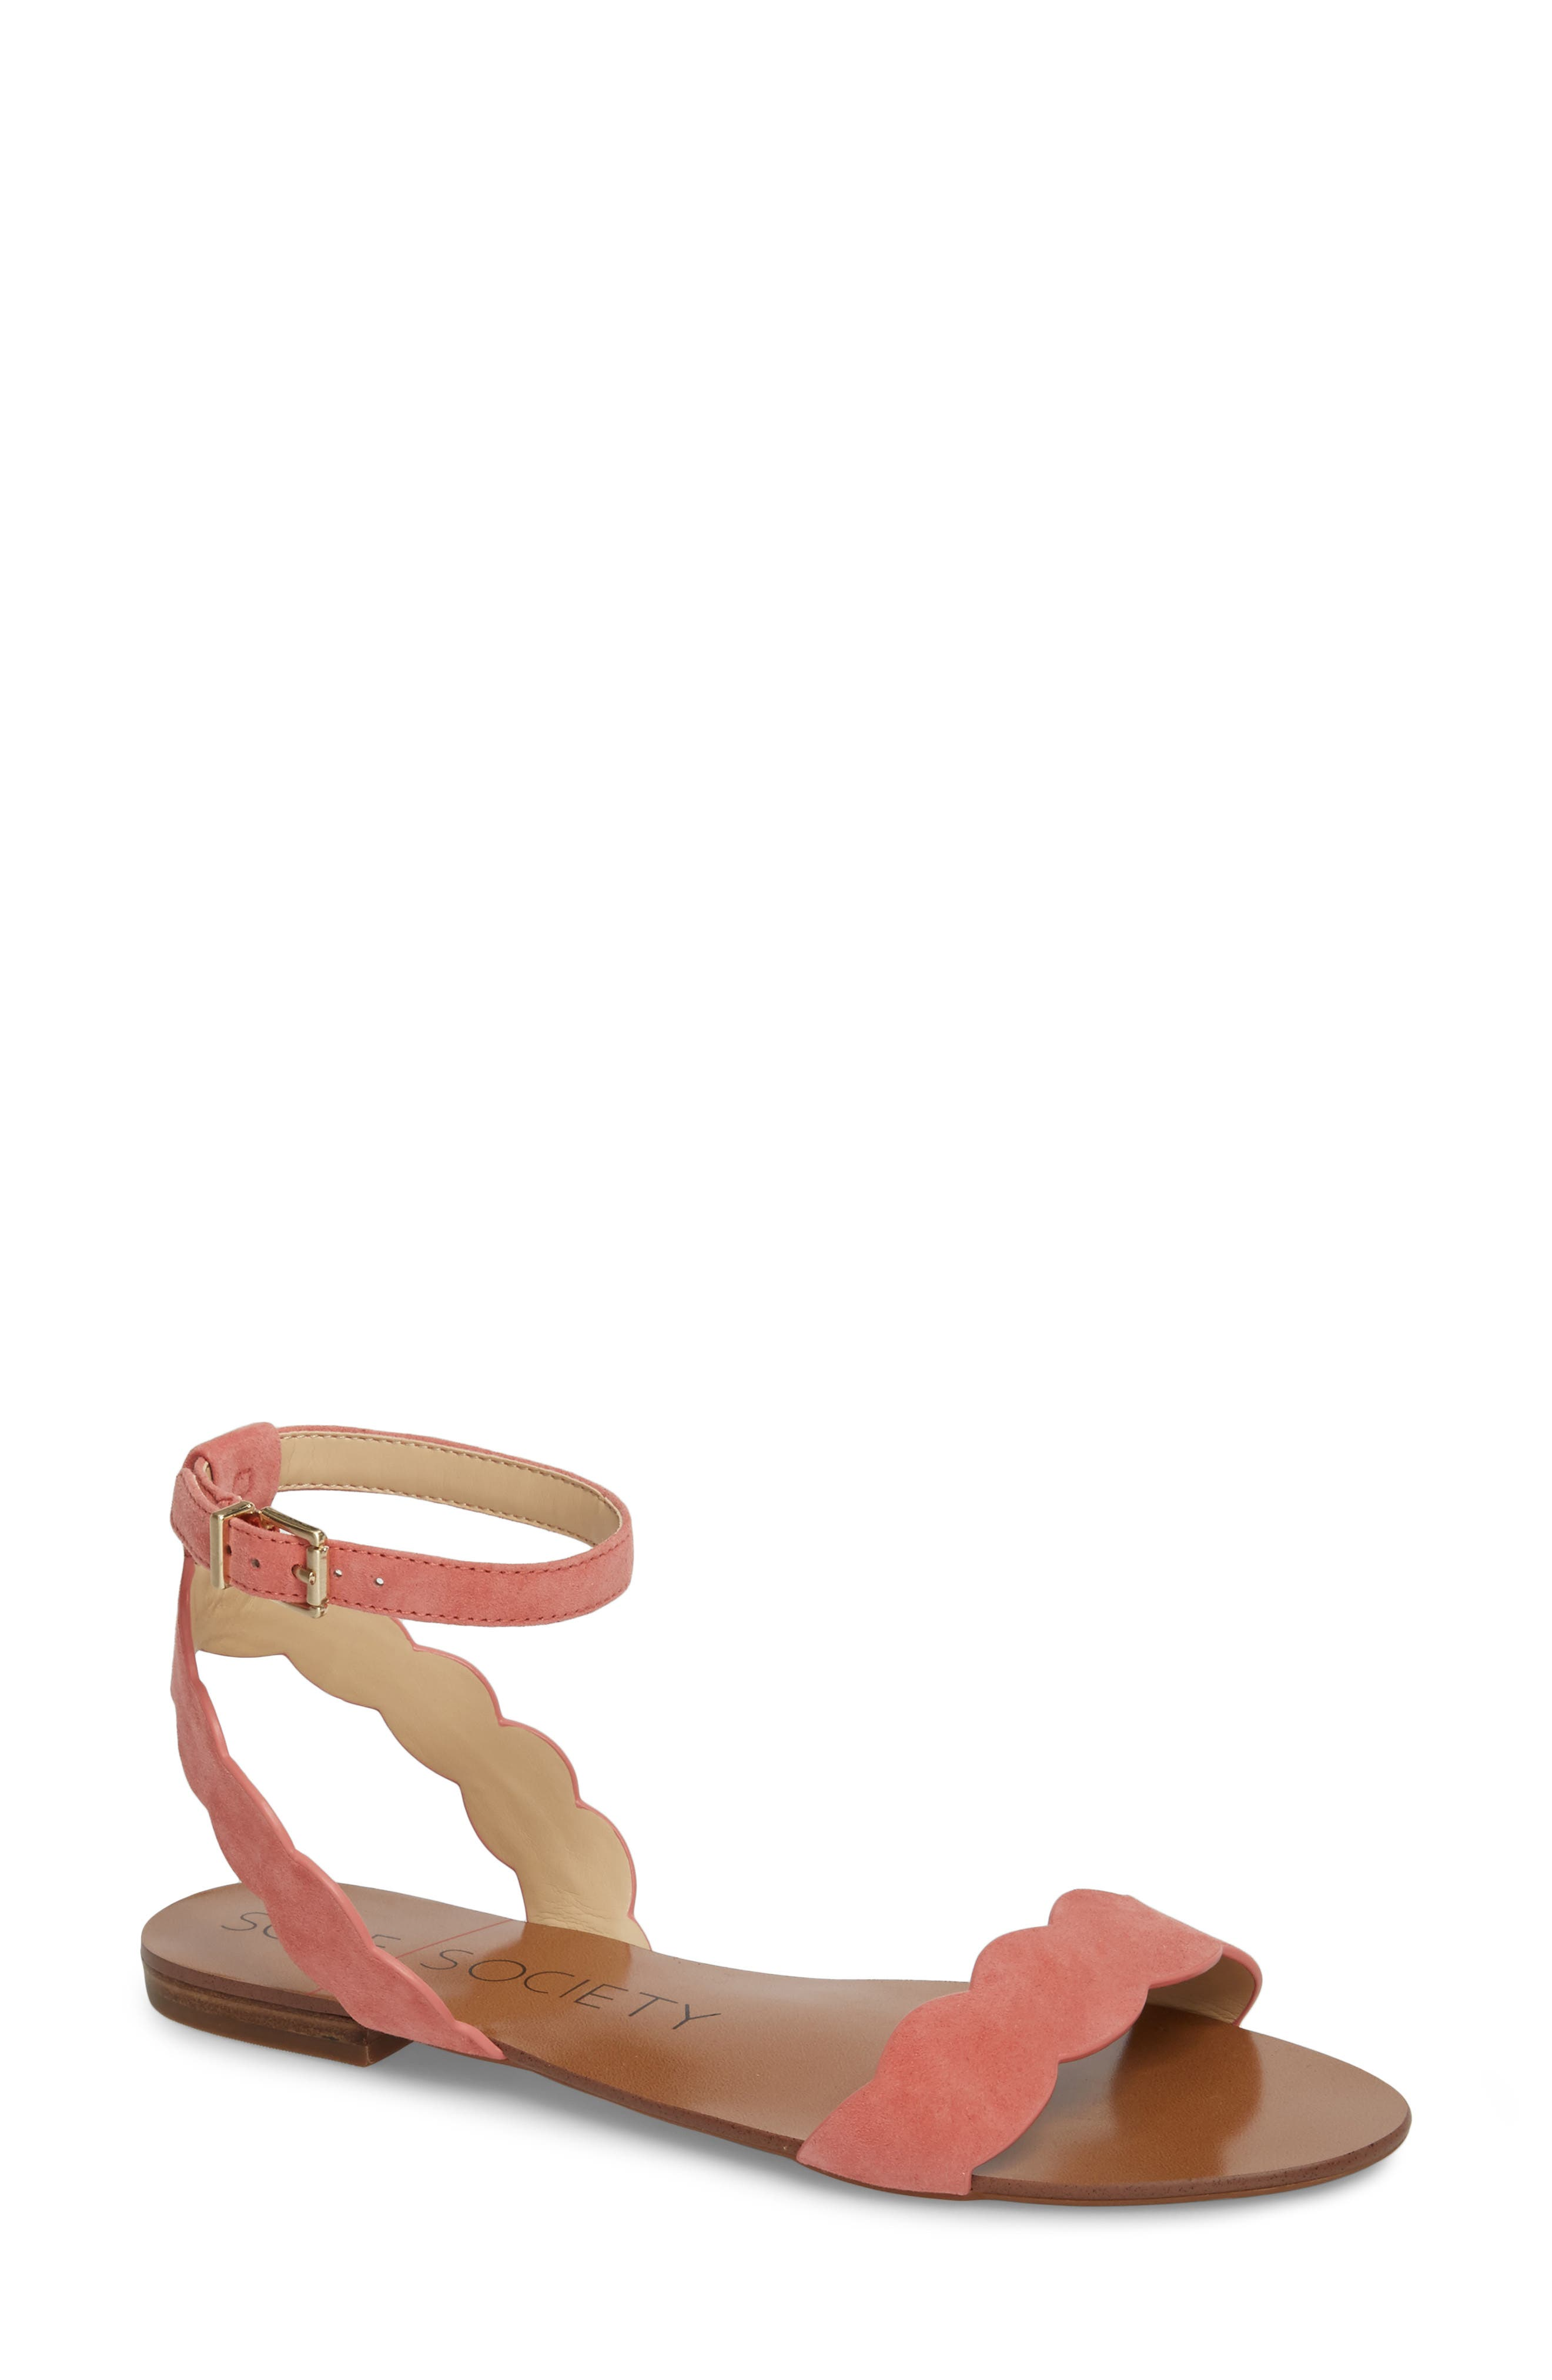 Alternate Image 1 Selected - Sole Society 'Odette' Scalloped Ankle Strap Flat Sandal (Women)